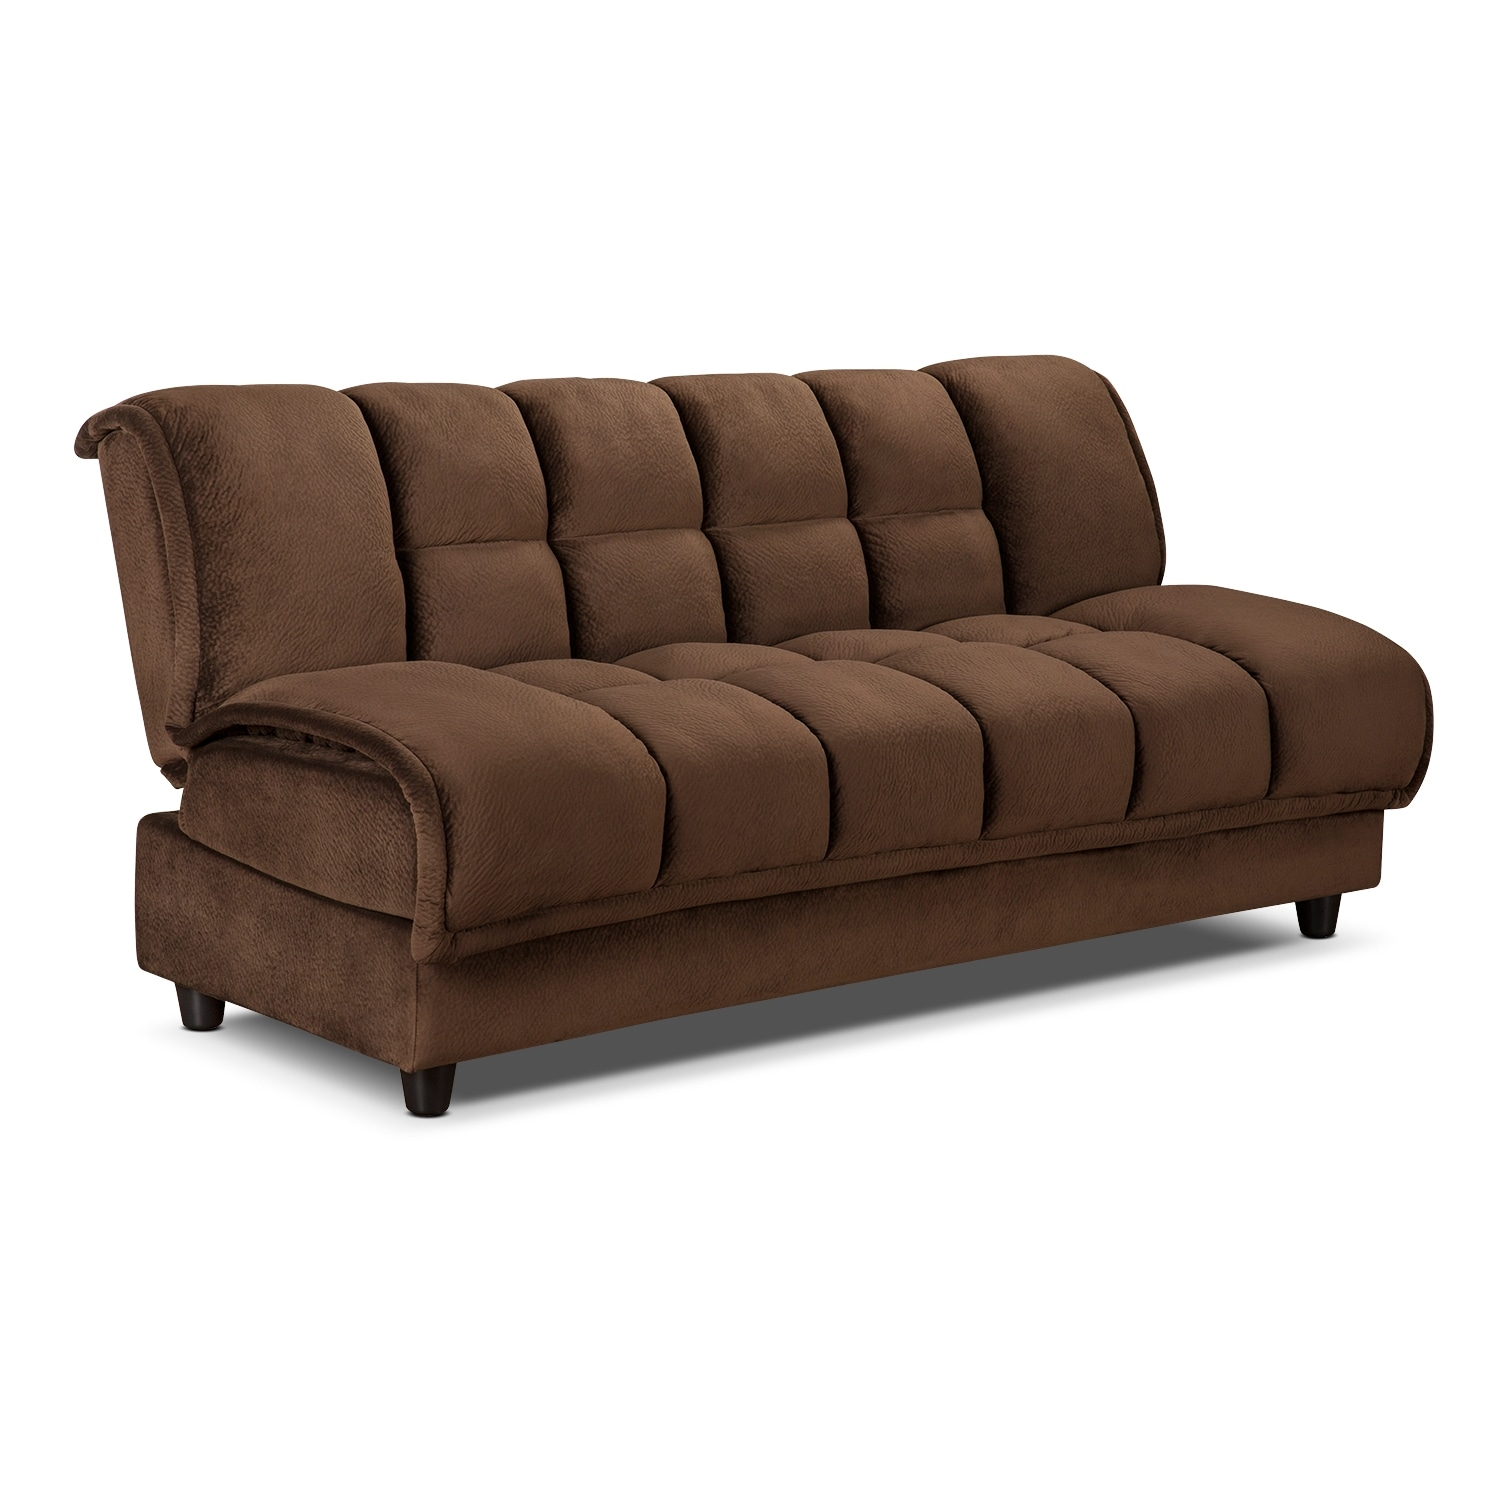 Early american style sofas hereo sofa for Signature furniture